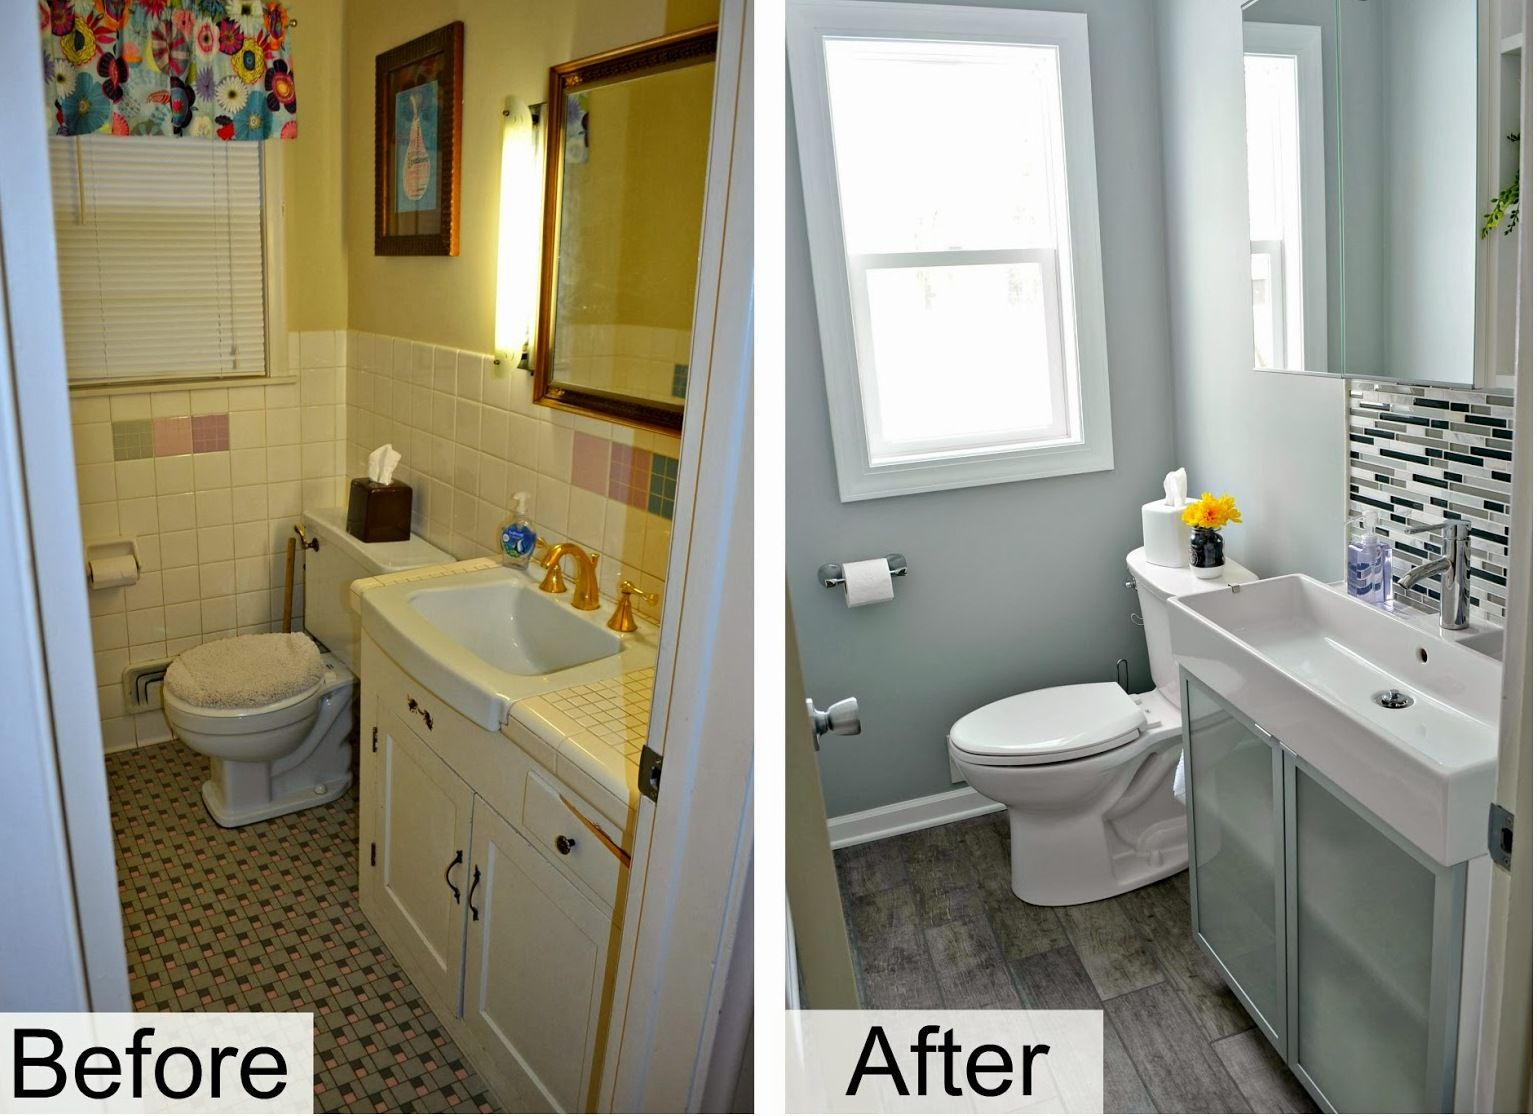 Bathroom Renovation Diy diy bathroom remodel ideas for average people | diy bathroom